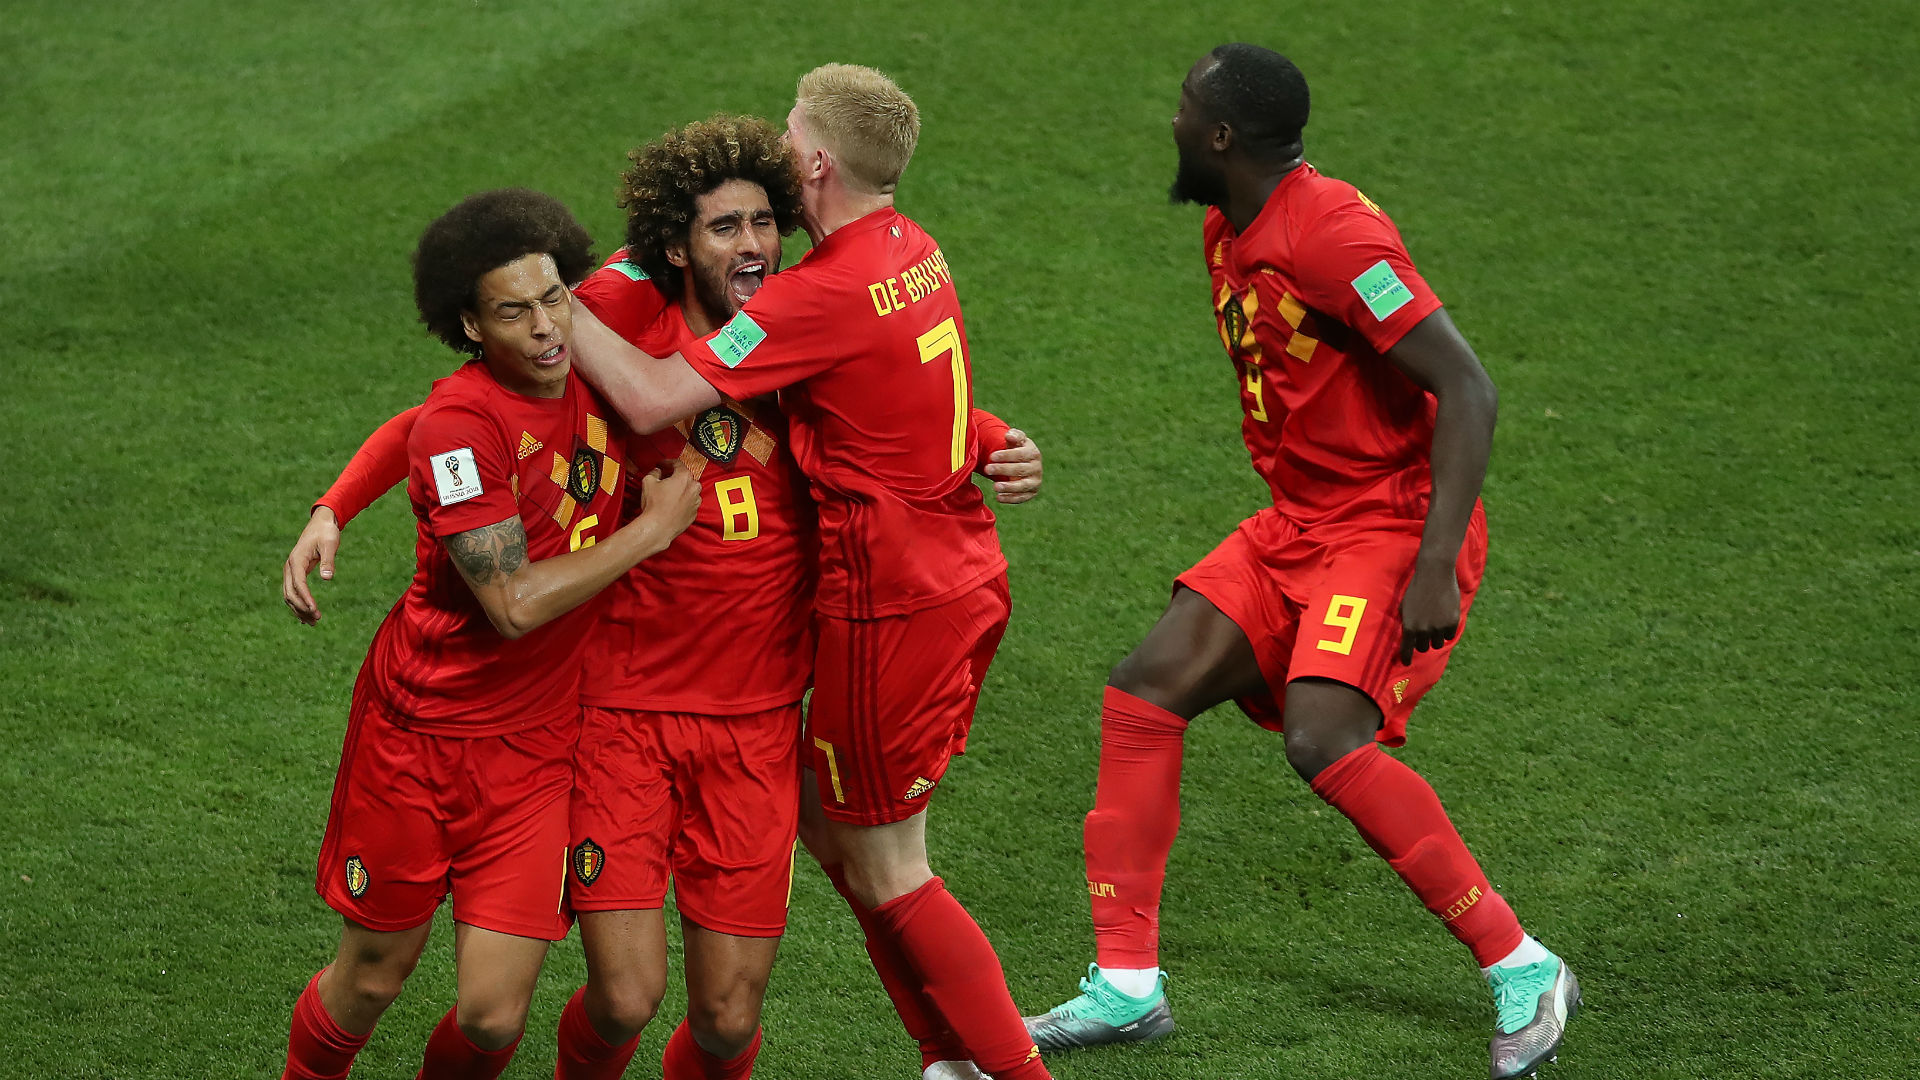 Belgium advances to World Cup semifinals, beats Brazil 2-1